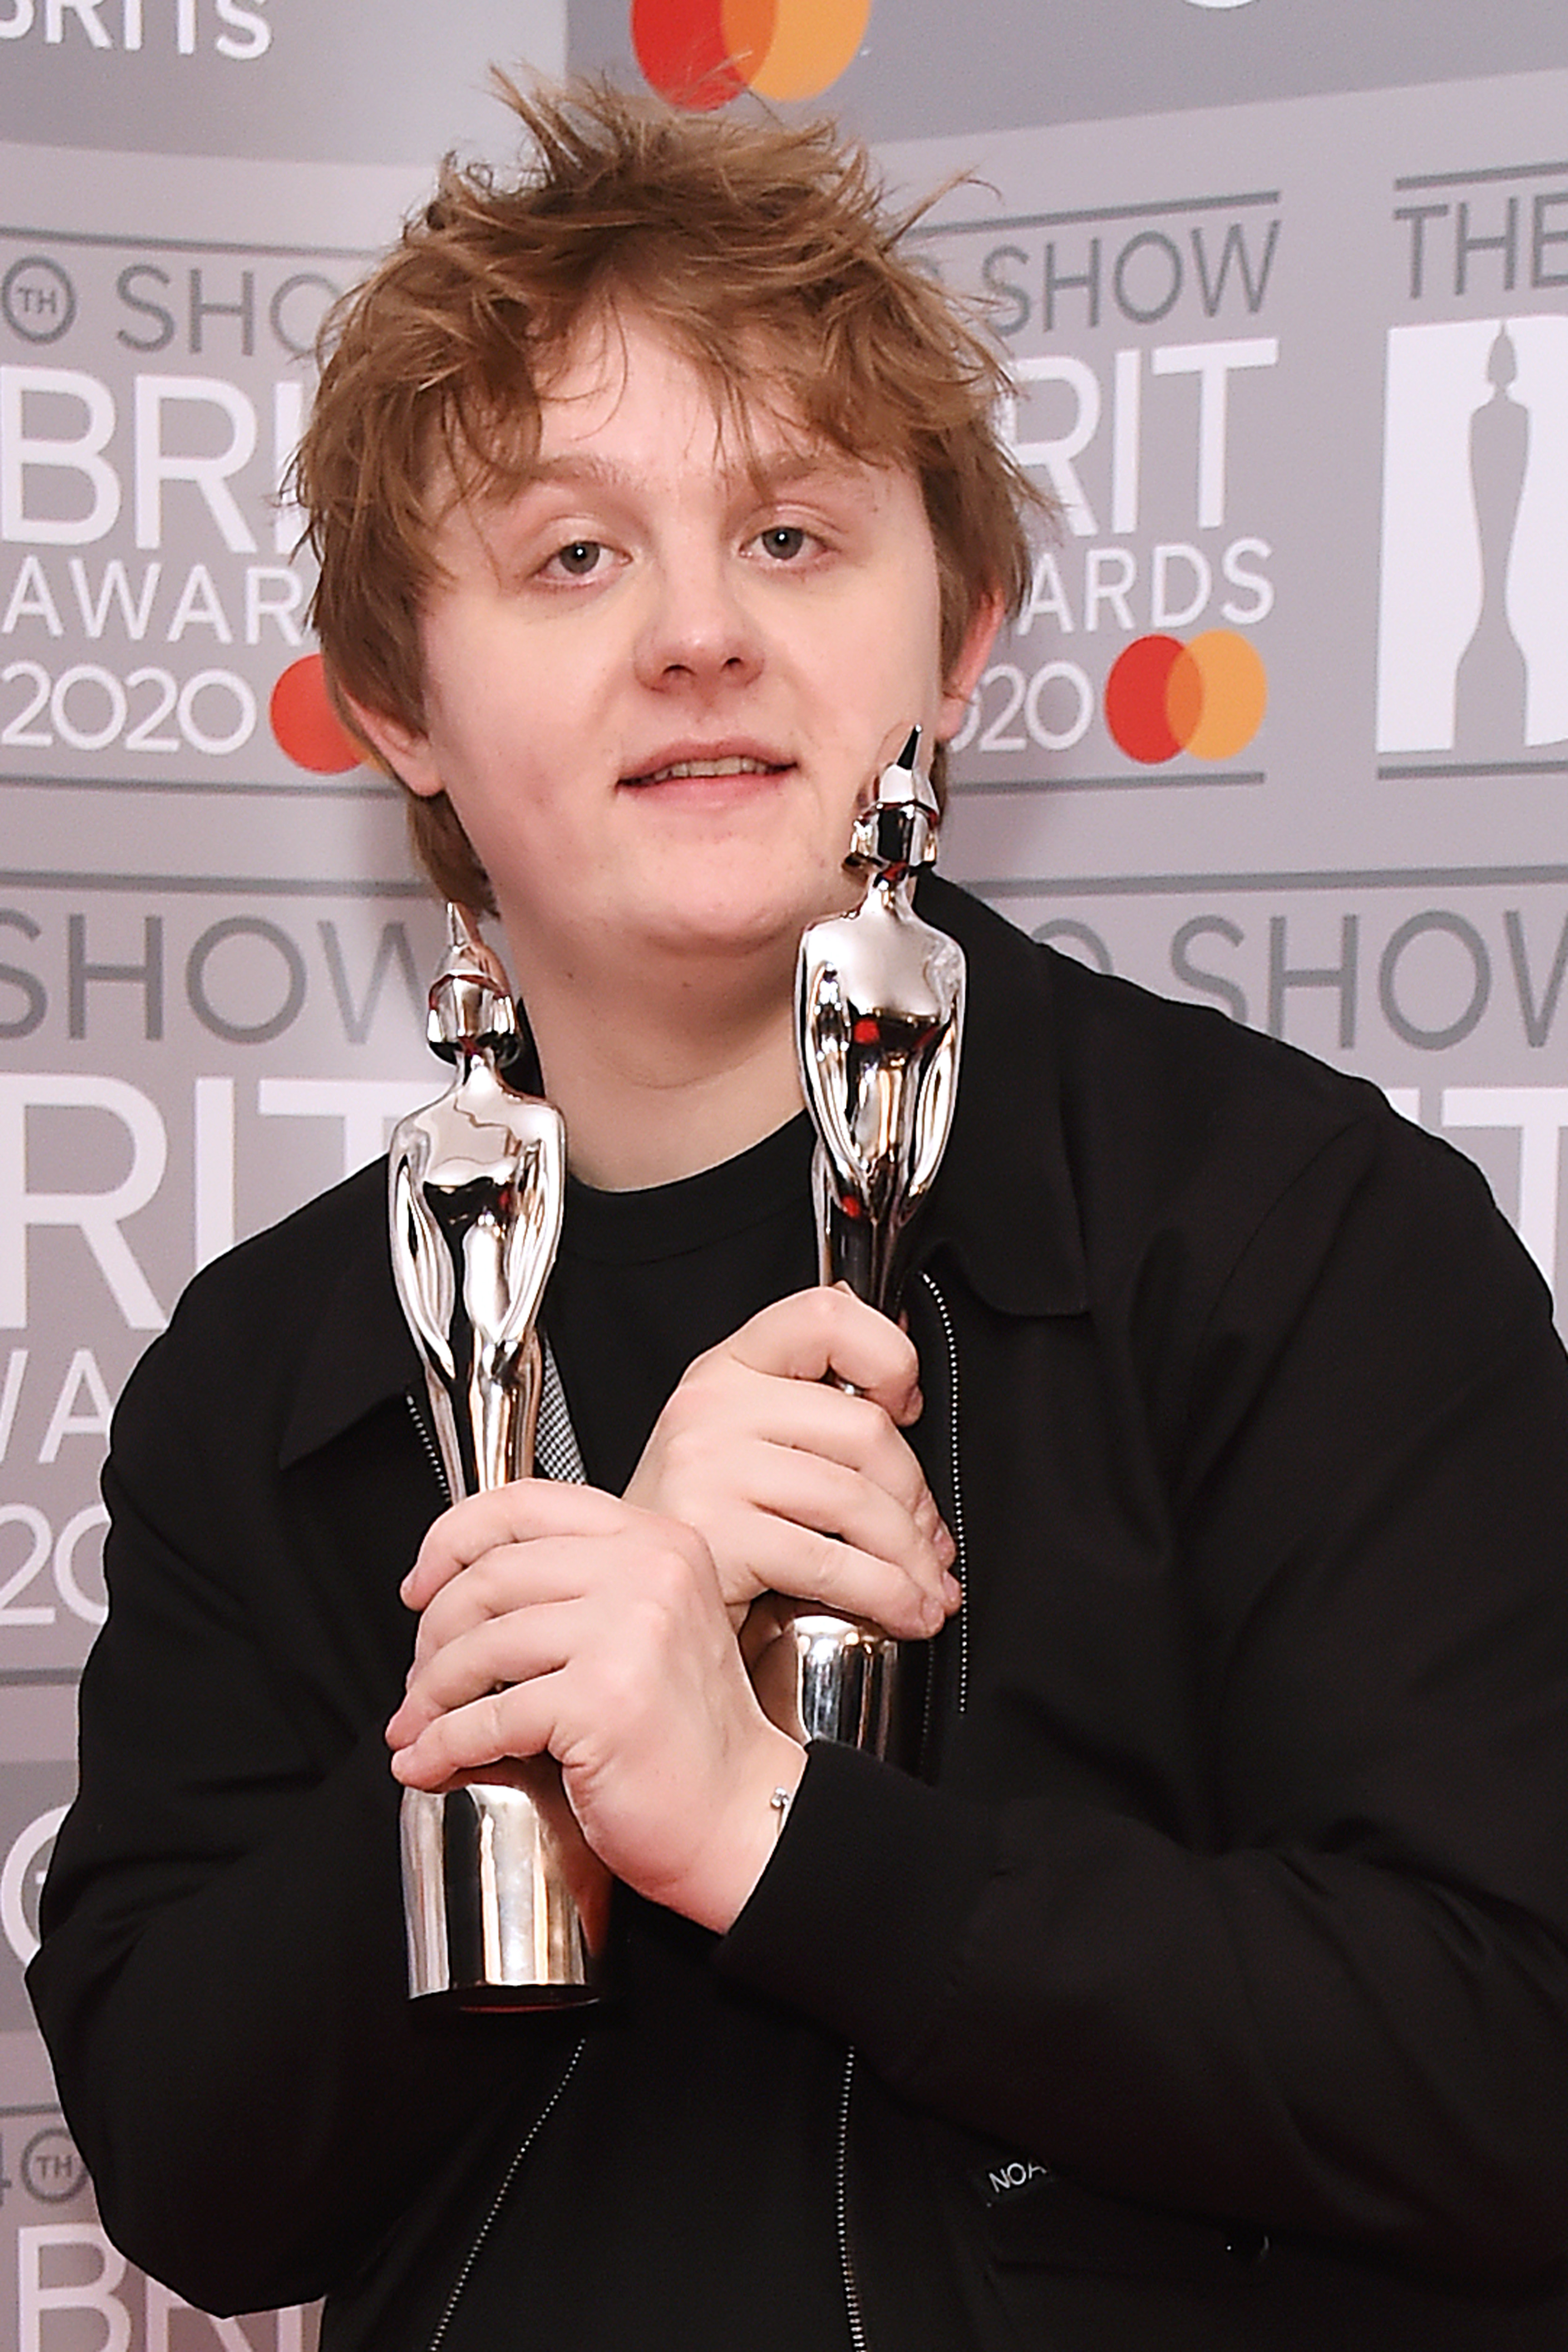 Lewis Capaldi, winner of the Best New Artist and Song Of The Year awards, poses in the winners room at The BRIT Awards 2020 at The O2 Arena on February 18, 2020 in London, England.  (Photo by David M. Benett/Dave Benett/Getty Images)